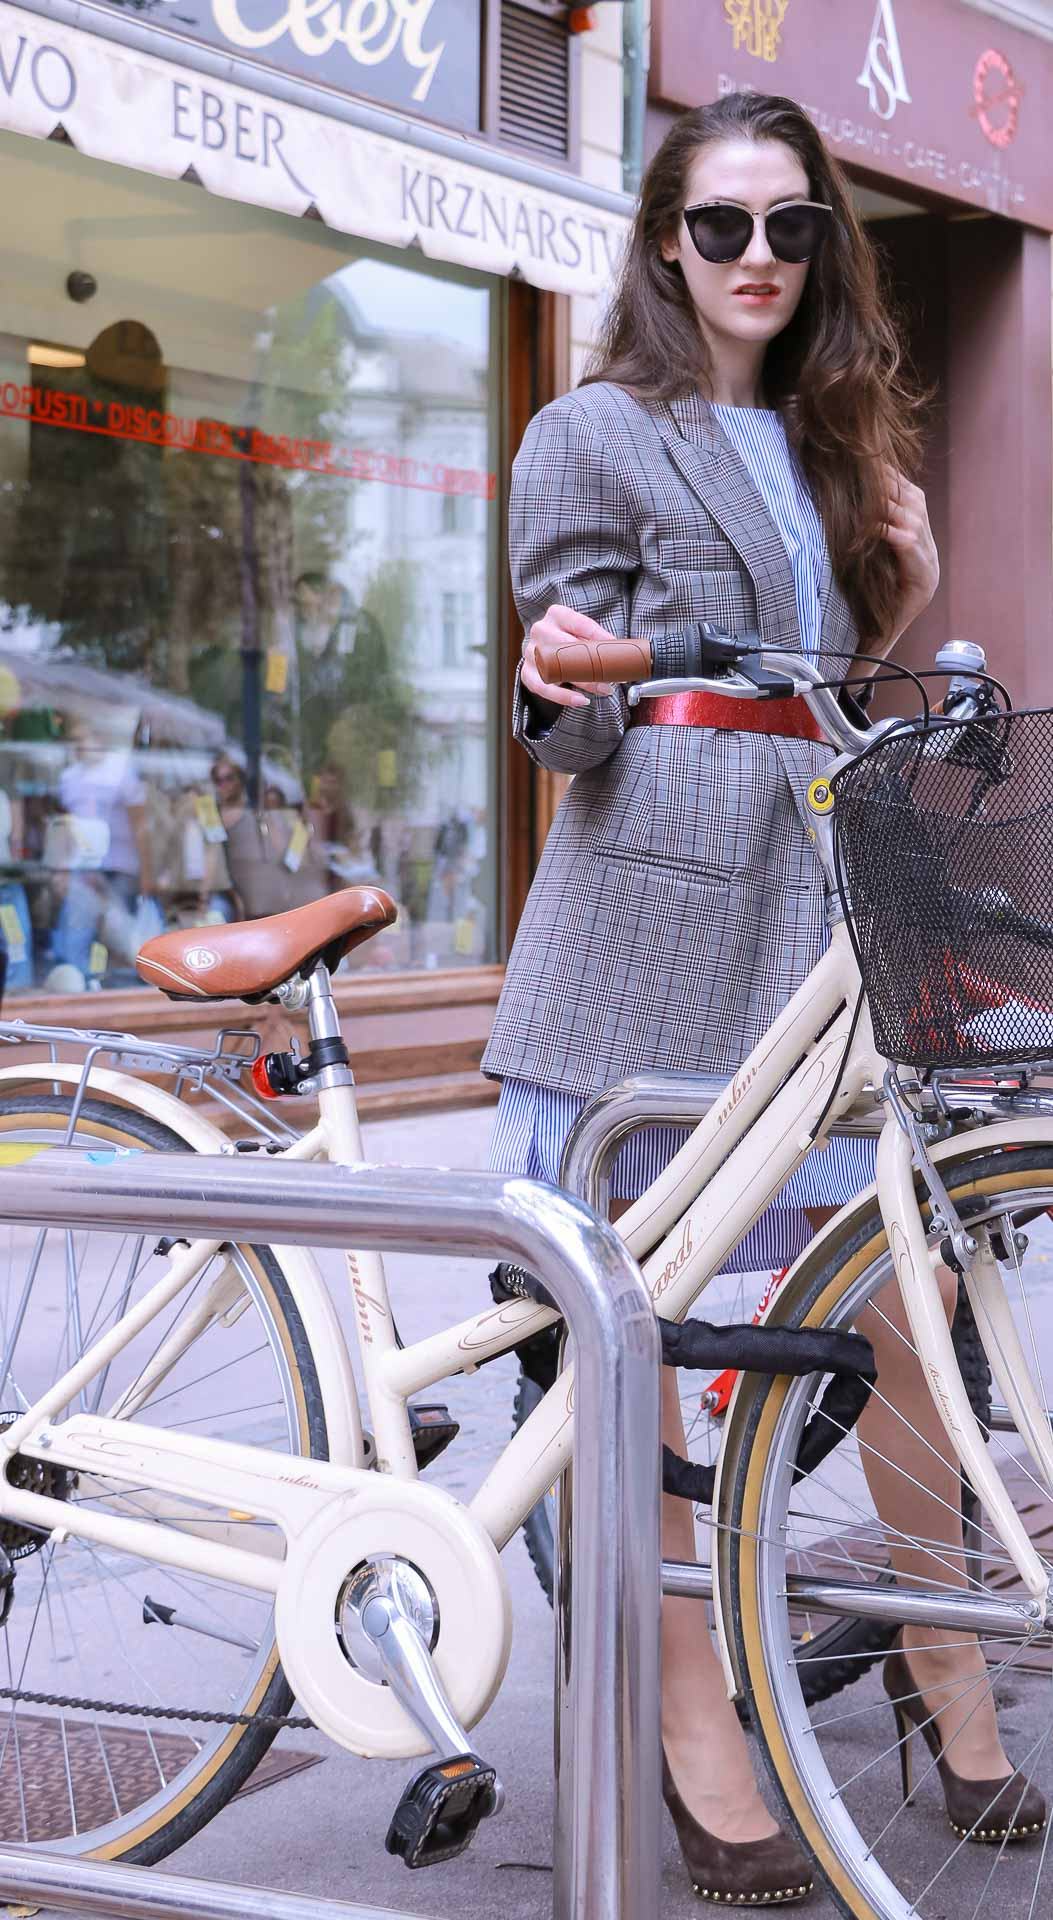 Veronika Lipar Fashion Blogger of Brunette from Wall Street dressed in Erika Cavallini plaid blazer, blue striped shirtdress, red belt, brown court shoes, black top handle bag, Le Specs black sunglasses while standing behind the bicycles